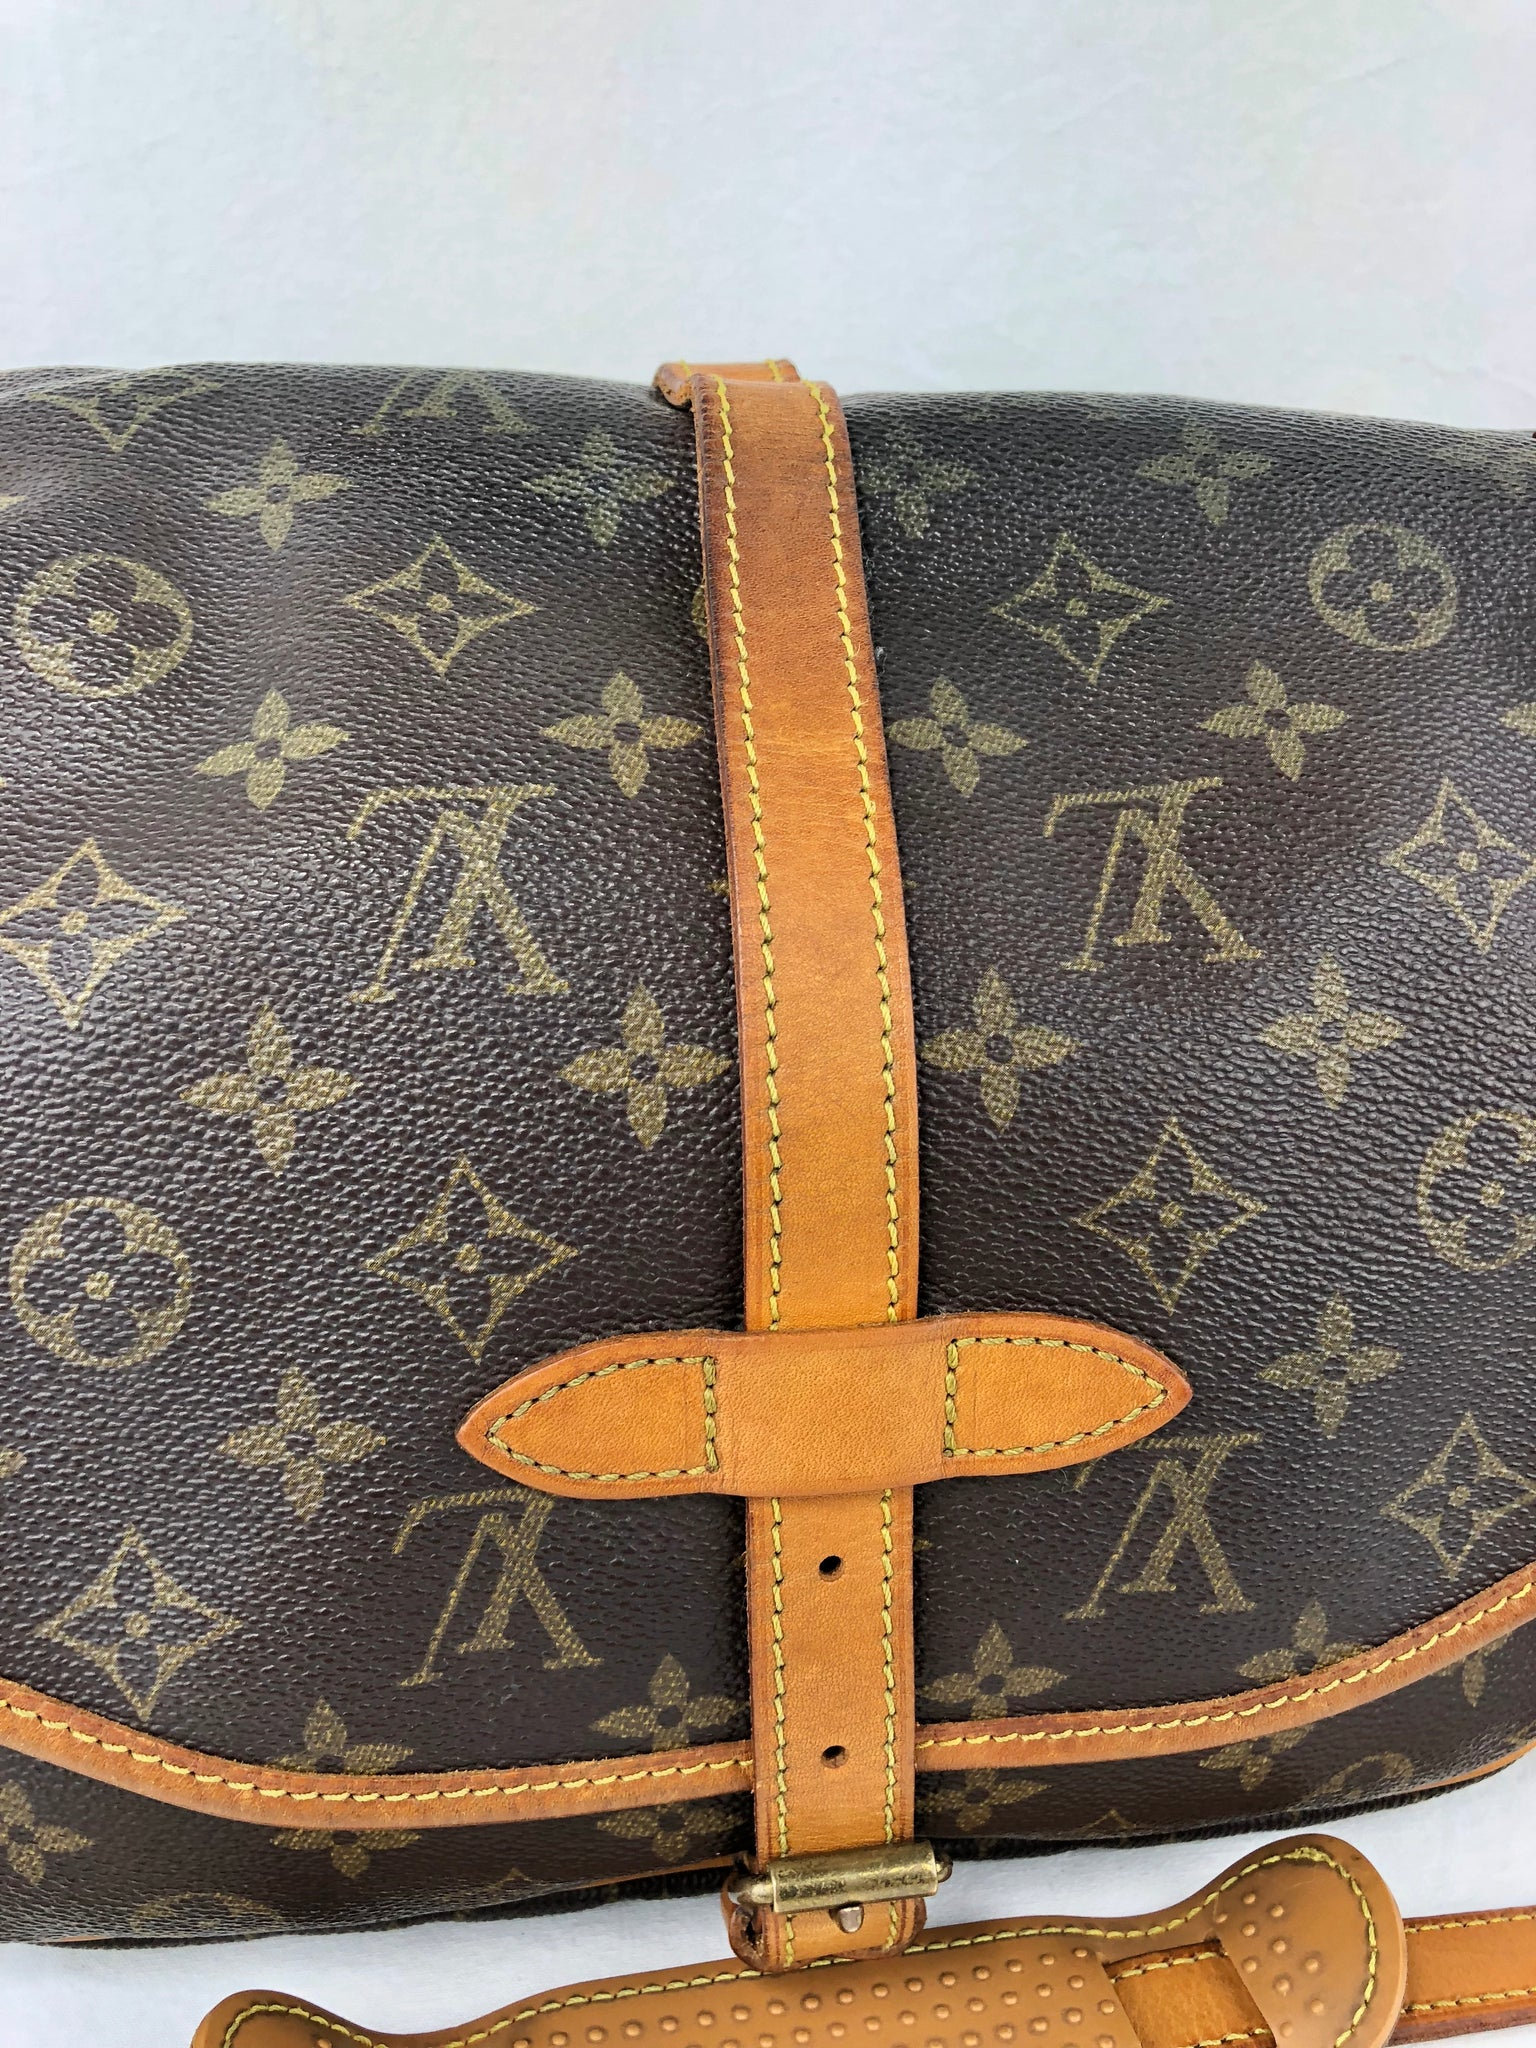 LOUIS VUITTON Saumur 30 Crossbody Bag (Monogram)